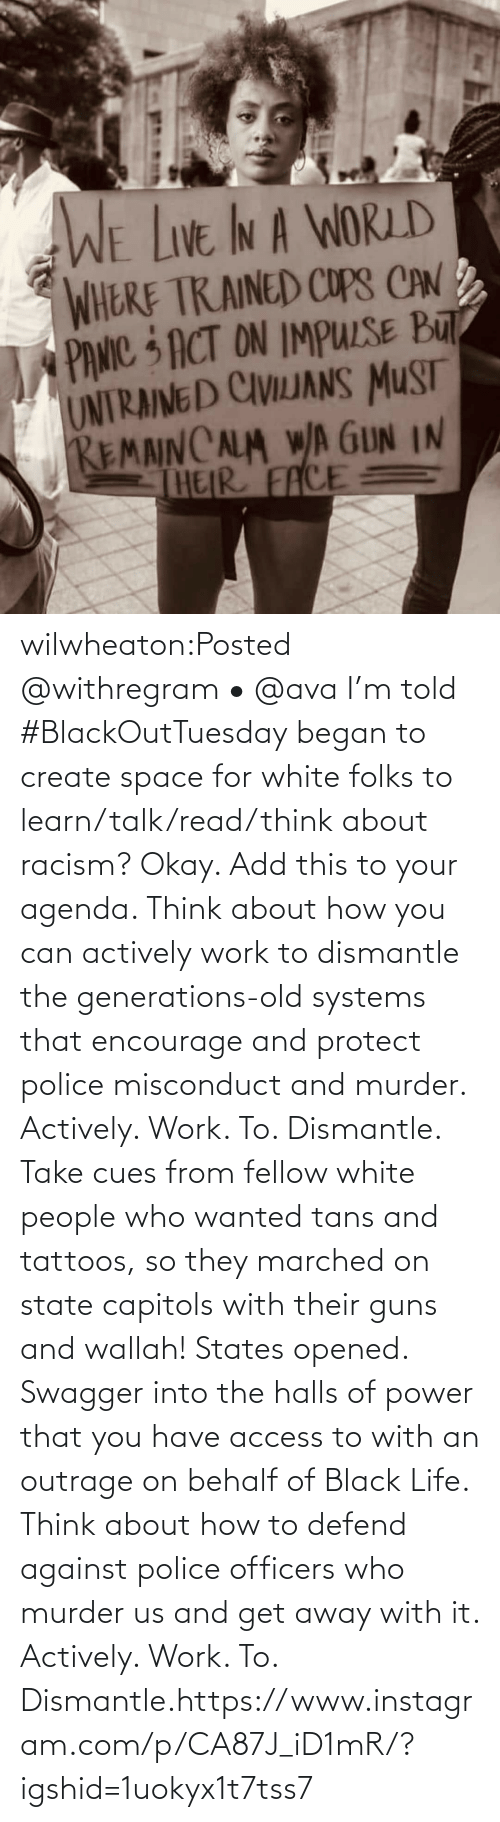 That: wilwheaton:Posted @withregram • @ava I'm told #BlackOutTuesday began to create space for white folks to learn/talk/read/think about racism? Okay. Add this to your agenda. Think about how you can actively work to dismantle the generations-old systems that encourage and protect police misconduct and murder. Actively. Work. To. Dismantle. Take cues from fellow white people who wanted tans and tattoos, so they marched on state capitols with their guns and wallah! States opened. Swagger into the halls of power that you have access to with an outrage on behalf of Black Life. Think about how to defend against police officers who murder us and get away with it. Actively. Work. To. Dismantle.https://www.instagram.com/p/CA87J_iD1mR/?igshid=1uokyx1t7tss7